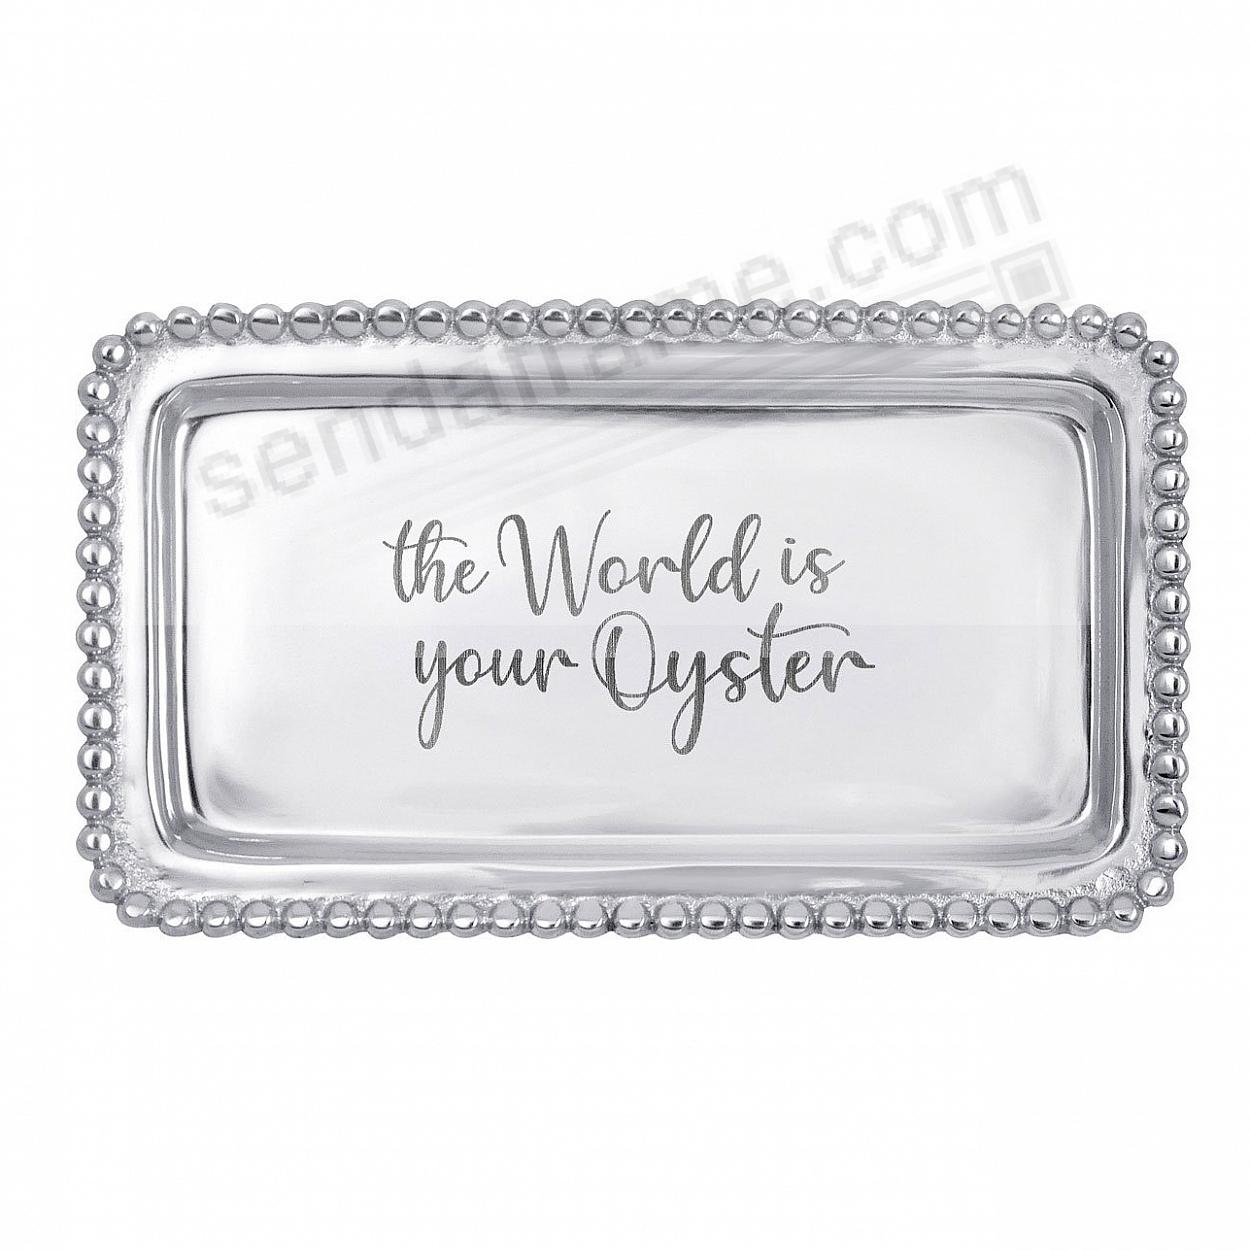 THE WORLD IS YOUR OYSTER 7in Statement Tray crafted by Mariposa®